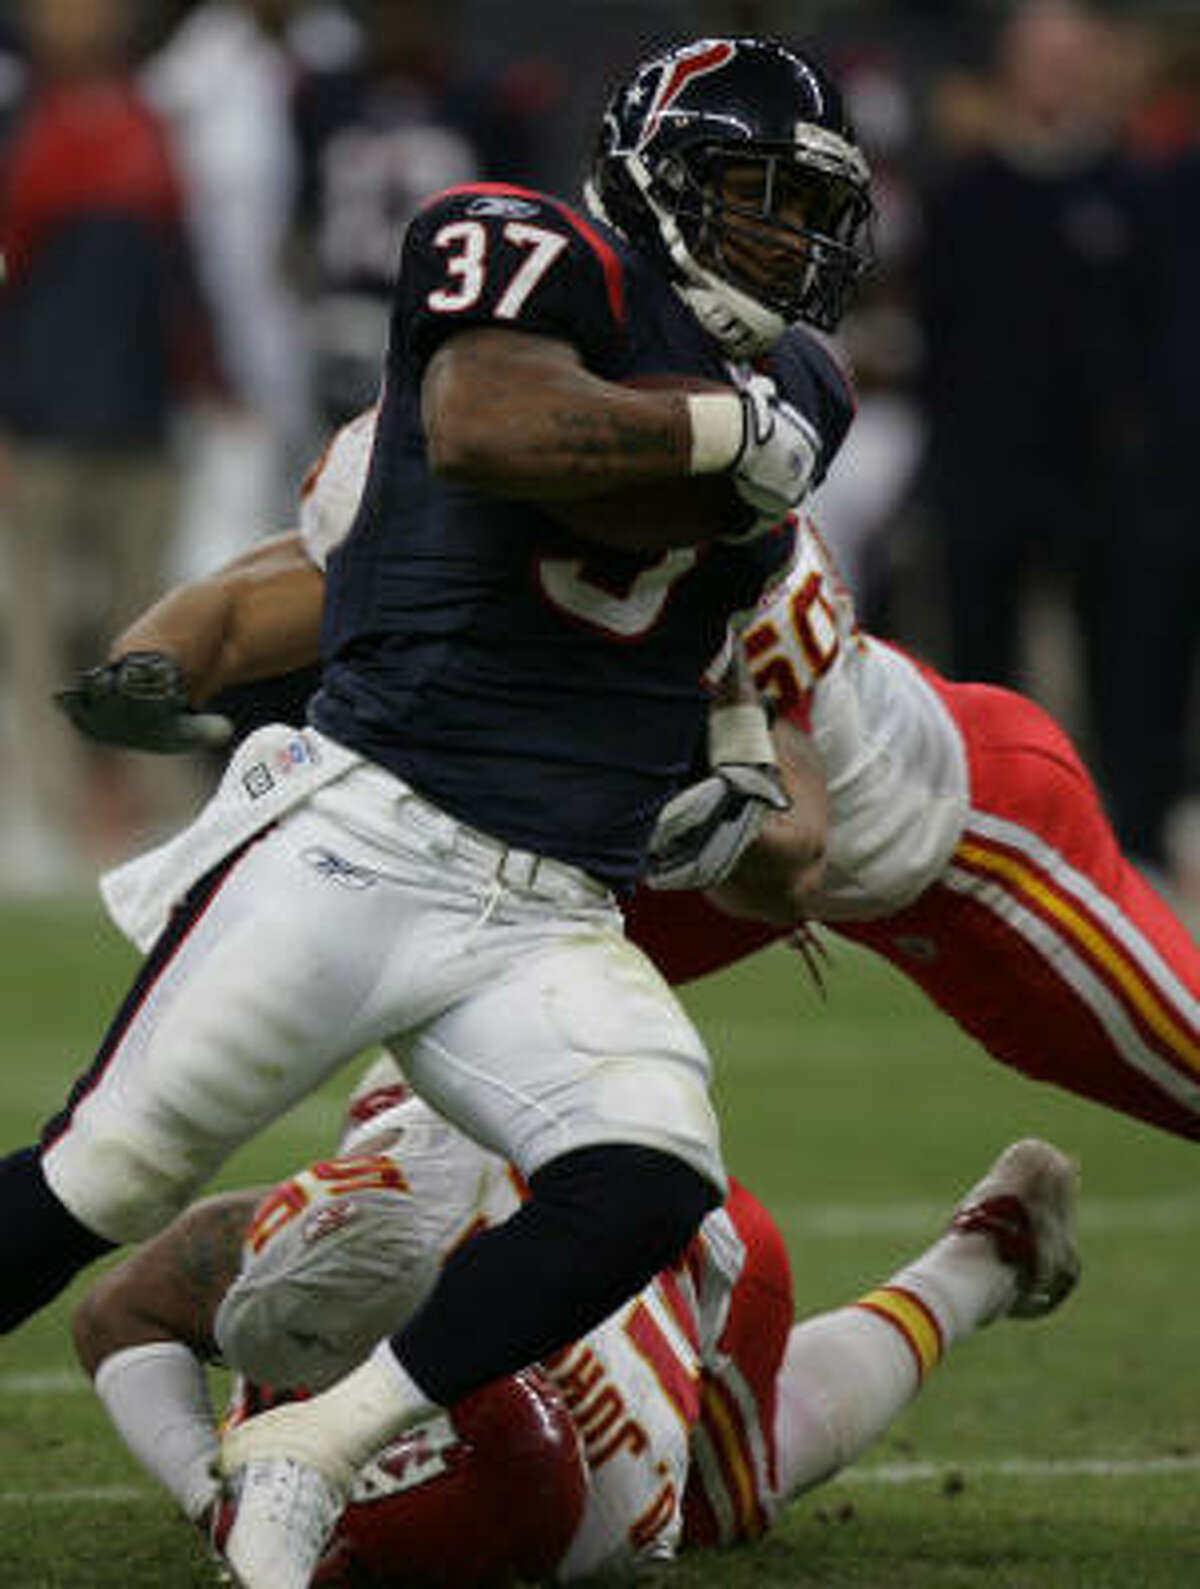 THE BESTRB Domanick Williams, 2003, 4th round, 104th overall pick Drafted as Domanick Davis to be a third-down back and kickoff returner, he averaged 1,065 yards rushing from 2003 through 2005 before a knee injury ended his career.